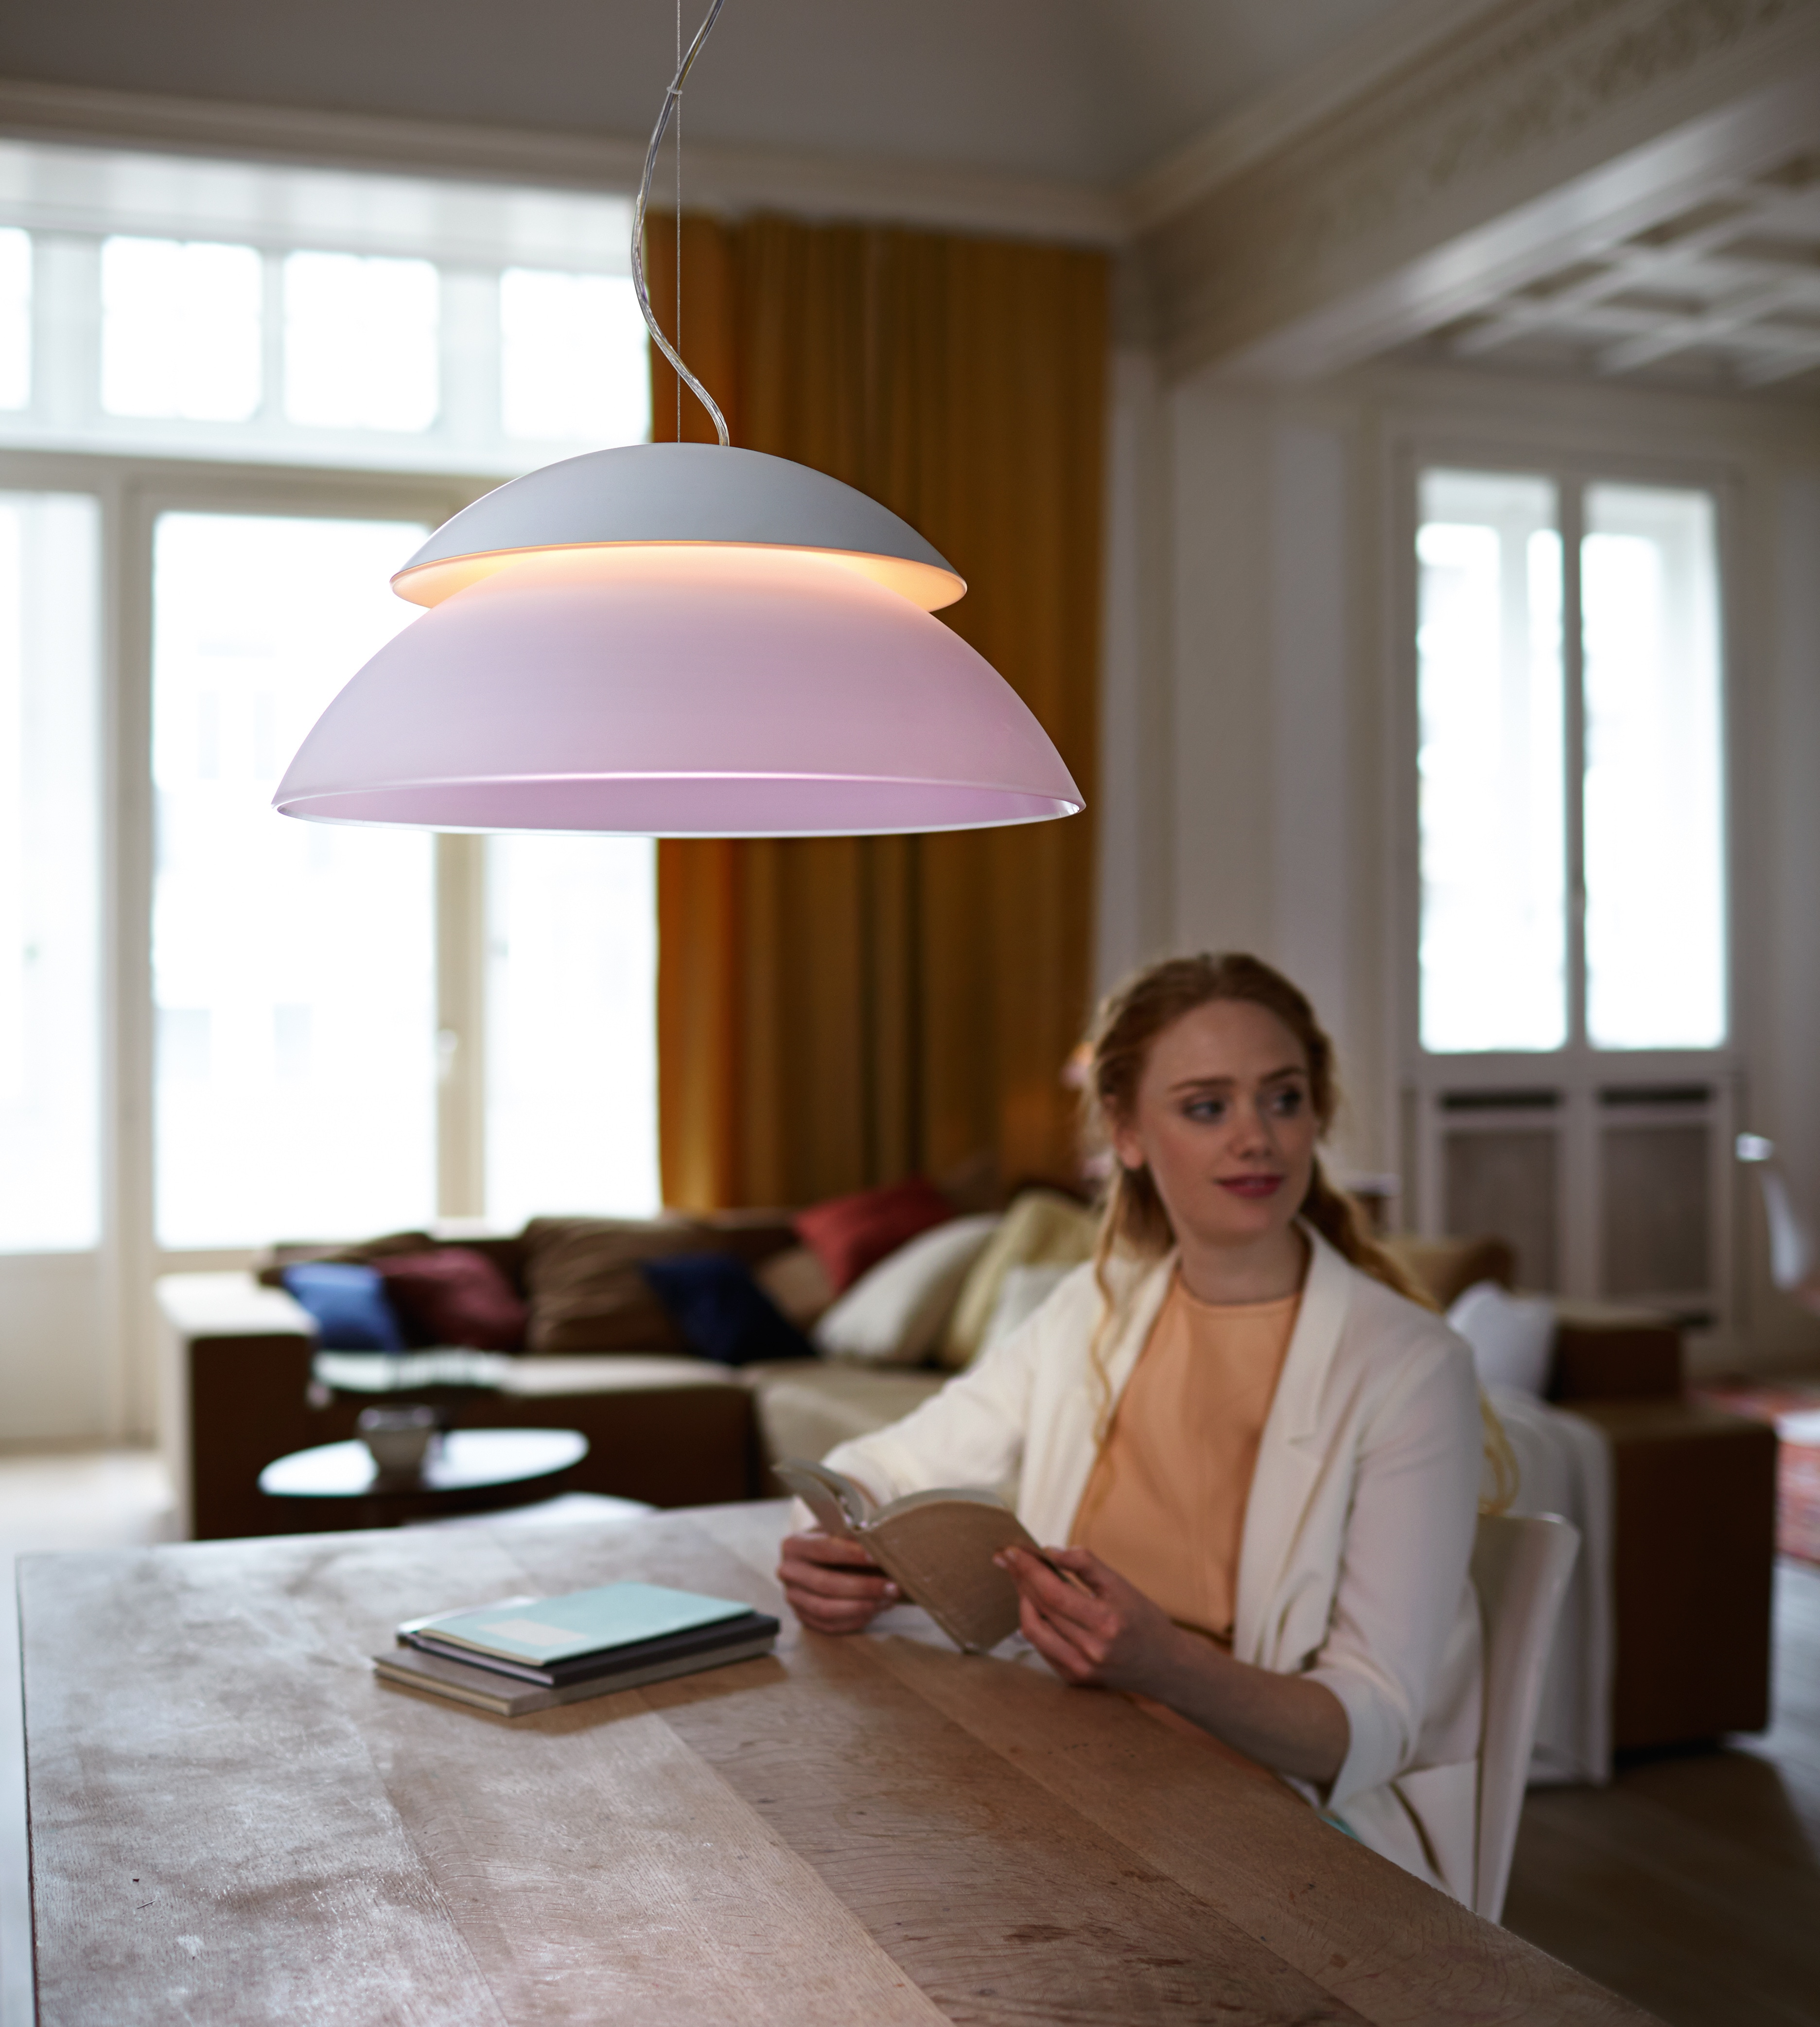 Plafondlamp In Keuken Get The Ultimate Light Experience With The New Philips Hue